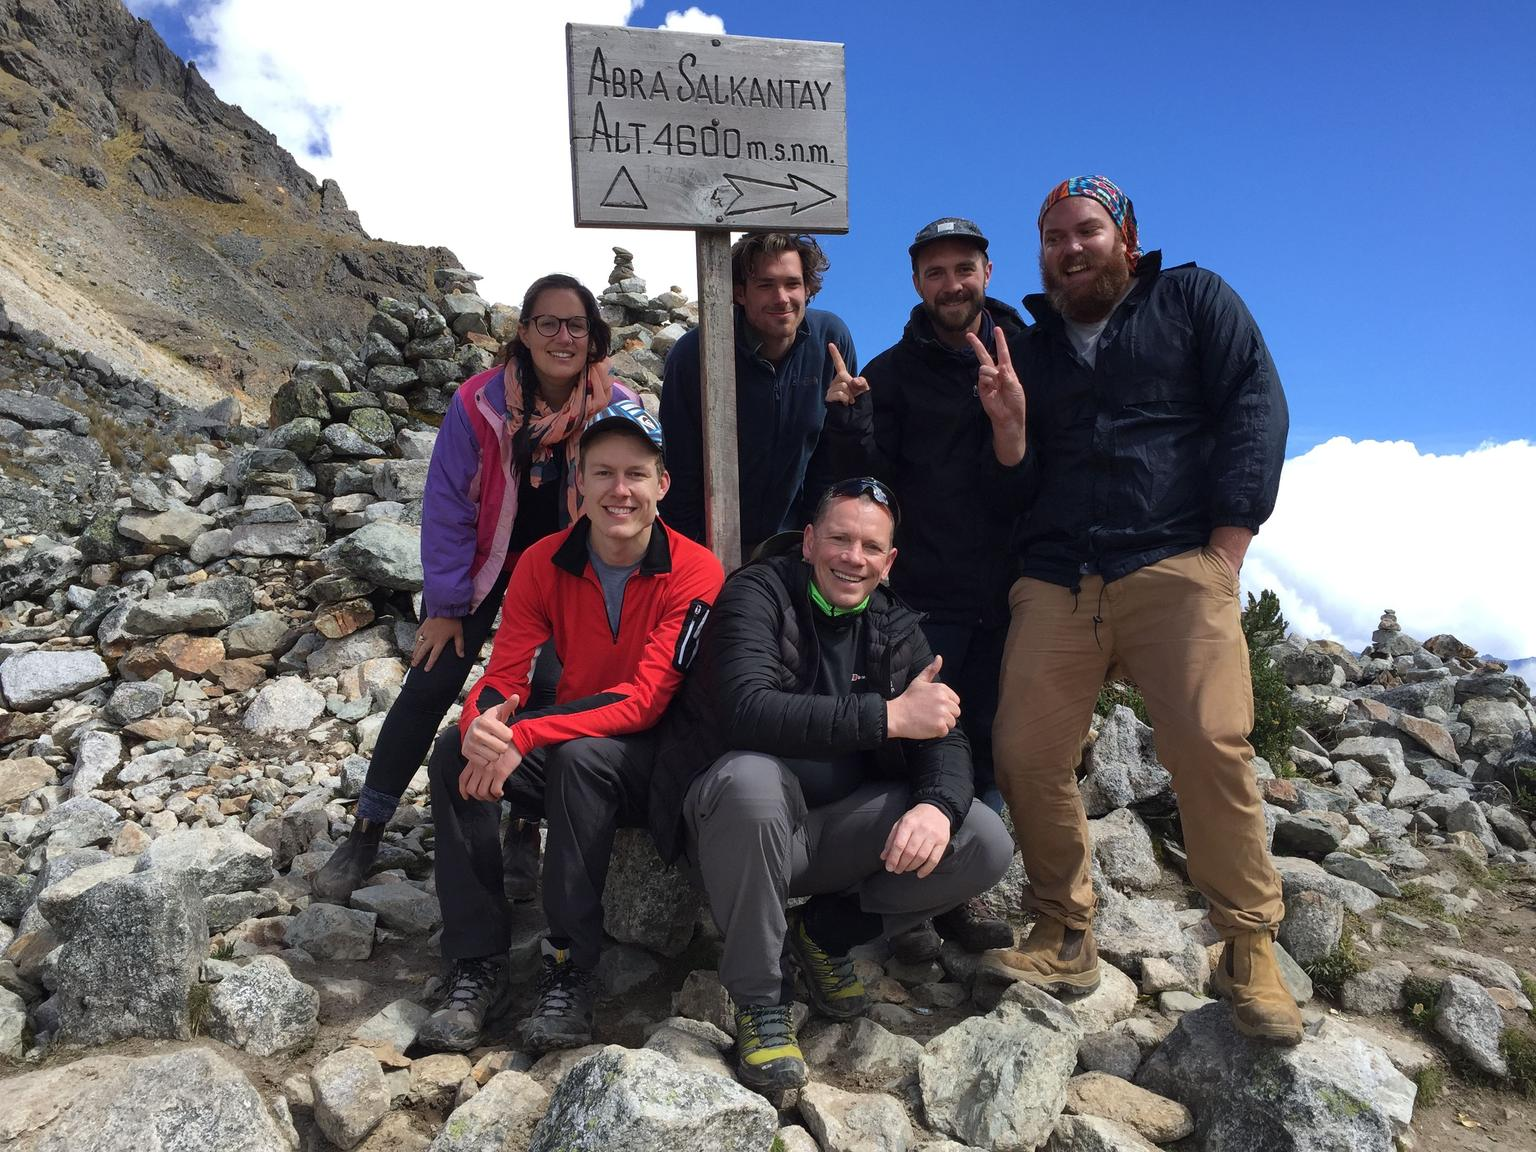 MORE PHOTOS, 5-Day Salkantay Trail Trekking Tour from Cusco